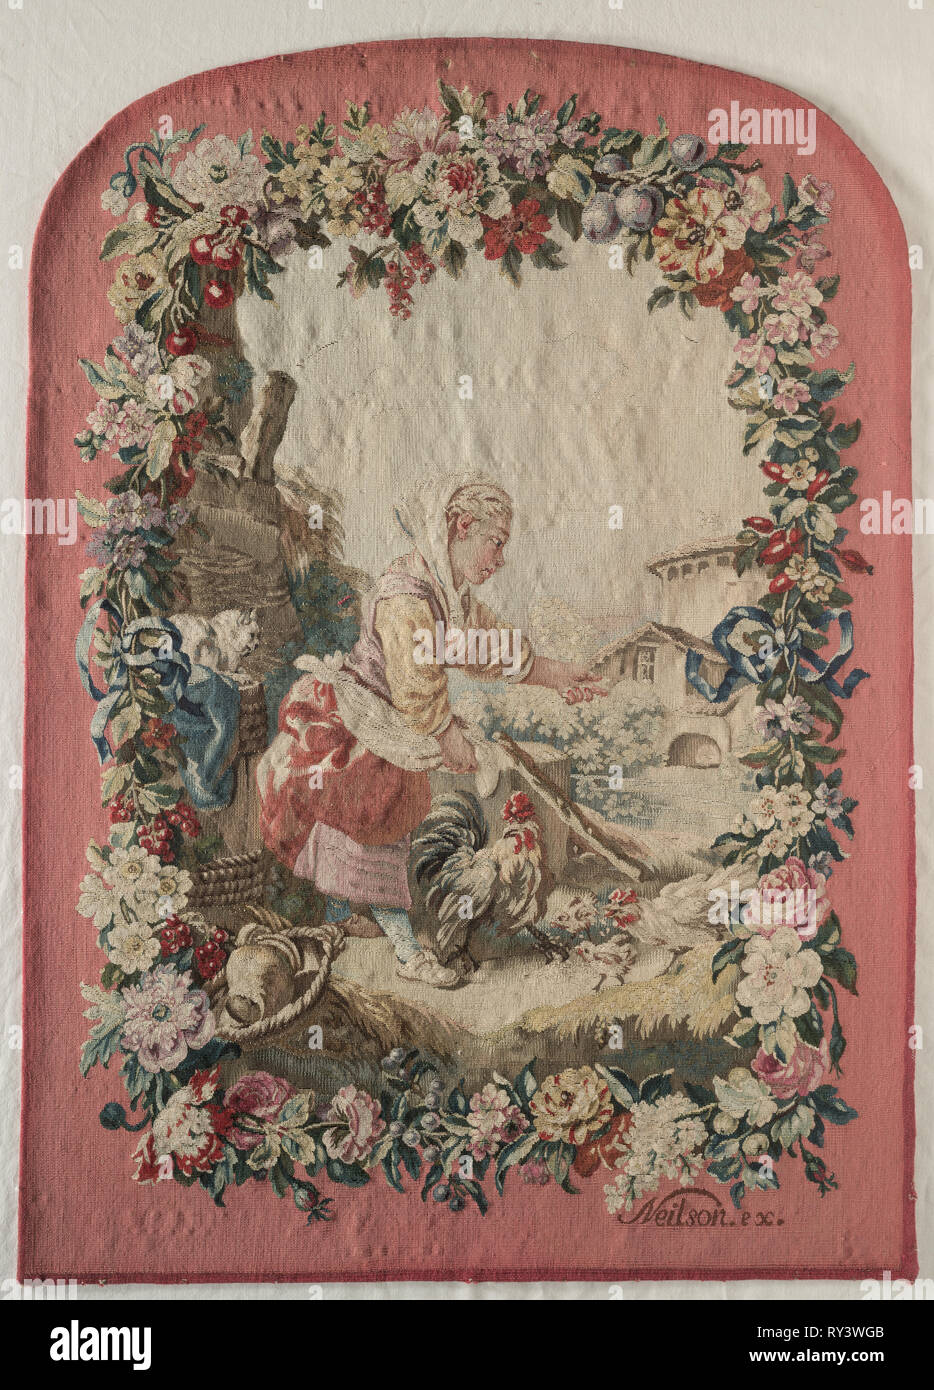 Fire Screen Panel, c. 1775. Jacques Neilson, Gobelins (French), after a design by Jean-Baptiste Marie Hüet (French, 1745-1811), after a design by Maurice Jacques (French, 1712-1784). Tapestry weave: silk and wool; overall: 79.1 x 56.2 cm (31 1/8 x 22 1/8 in - Stock Image